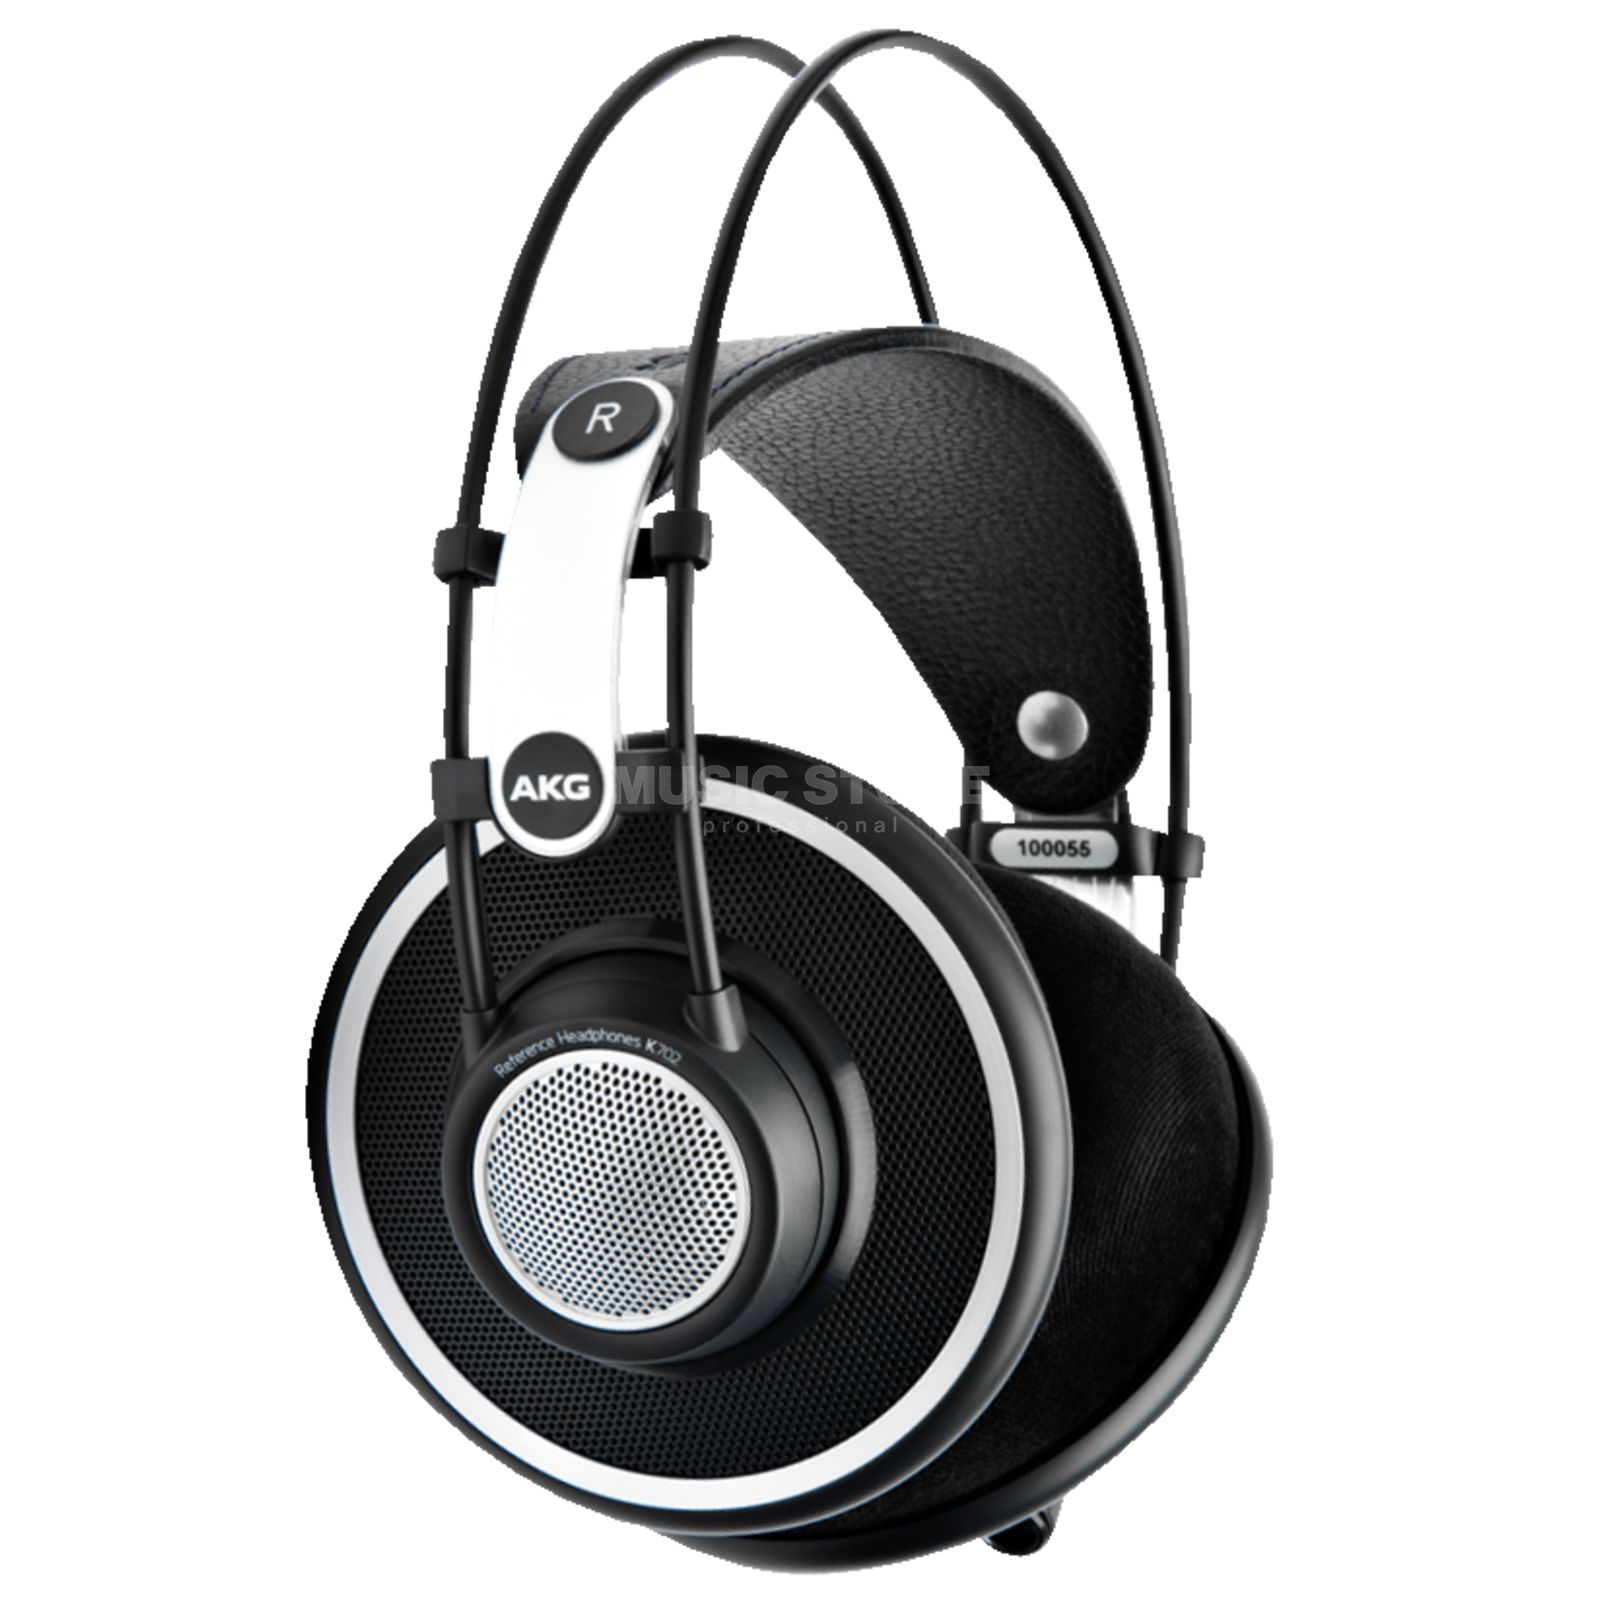 AKG K 702 Reference Class Premium  Headphones   Product Image